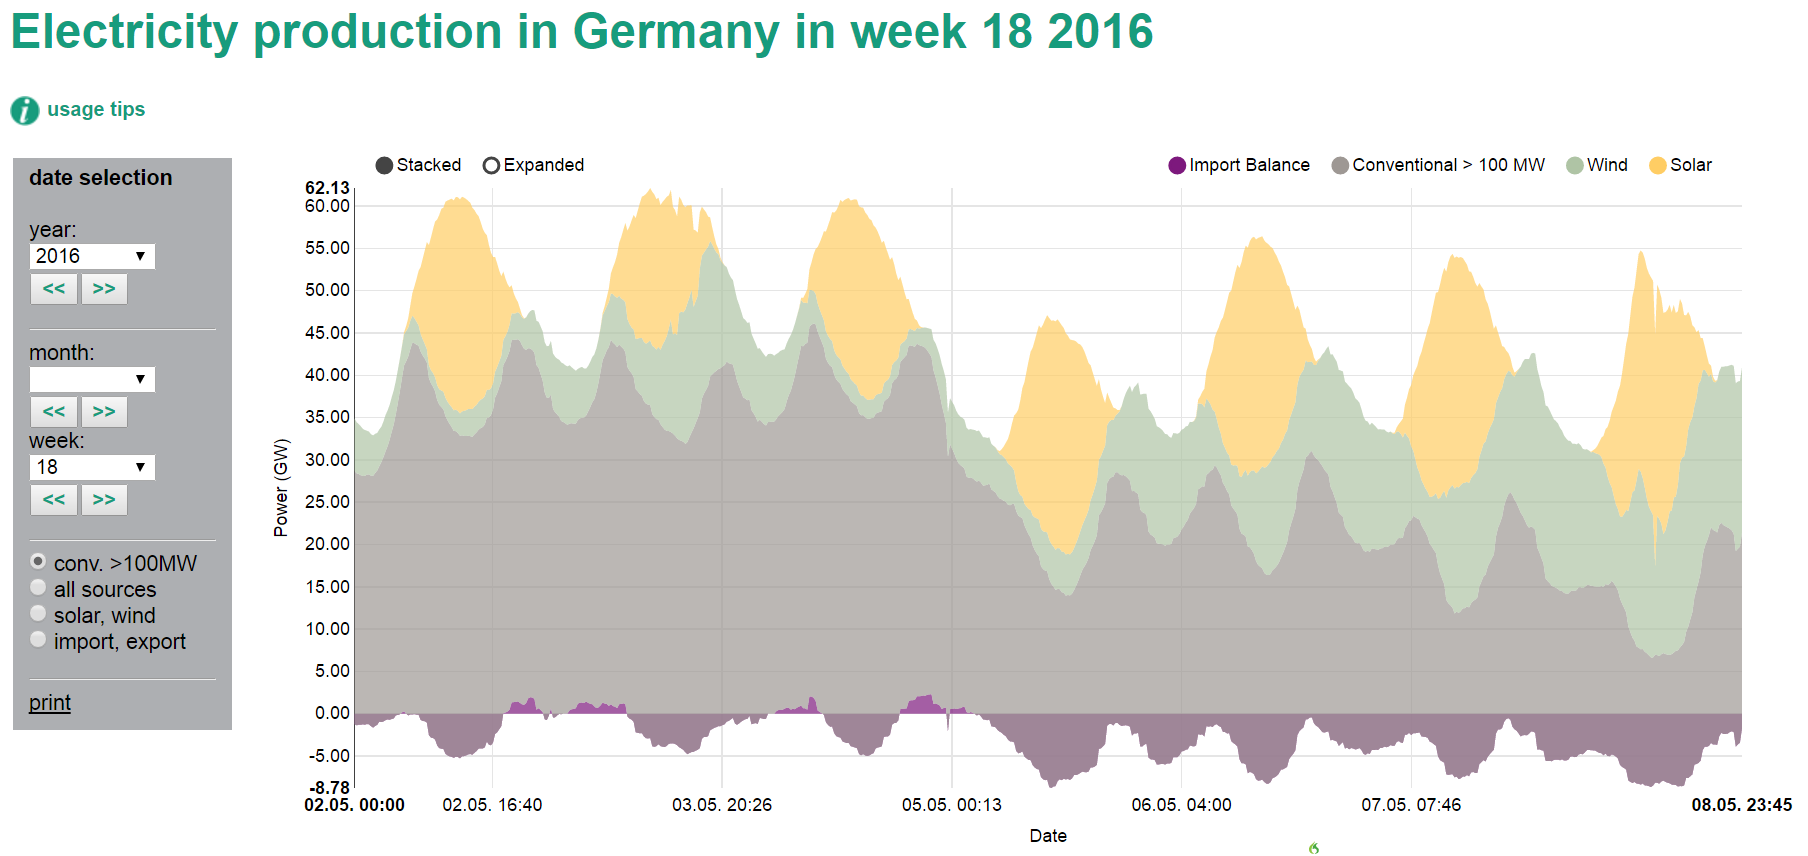 Most reports focus on high percentages of renewable electricity, but the extremely low level of conventional power in the second half of last week deserves closer attention. Source: Energy-Charts.de